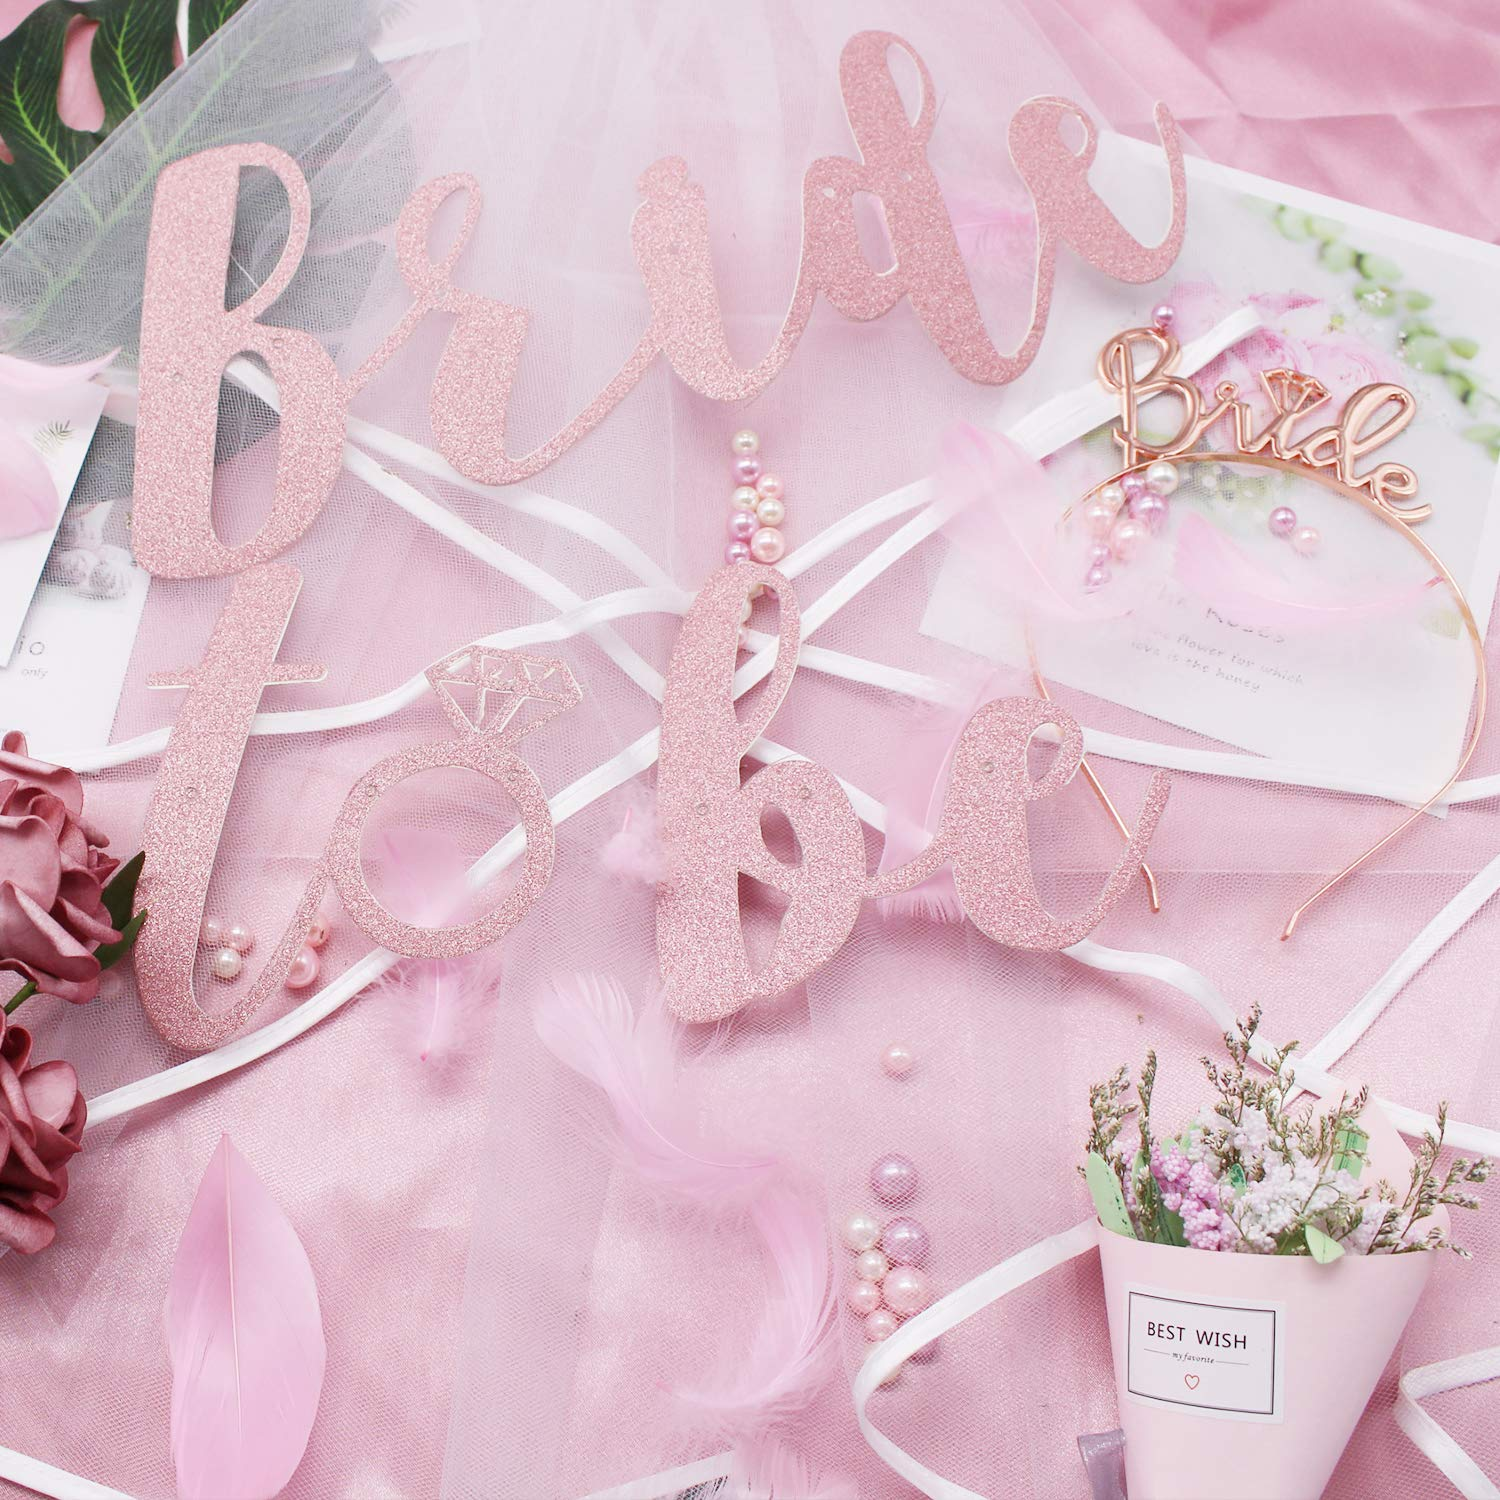 Hen Party Decorations Accessories(38PCS) Bride to Be Banner Hen Party Latex Balloons Confetti Balloons Photo Booth Props for Hen Do Nights Party Supplies